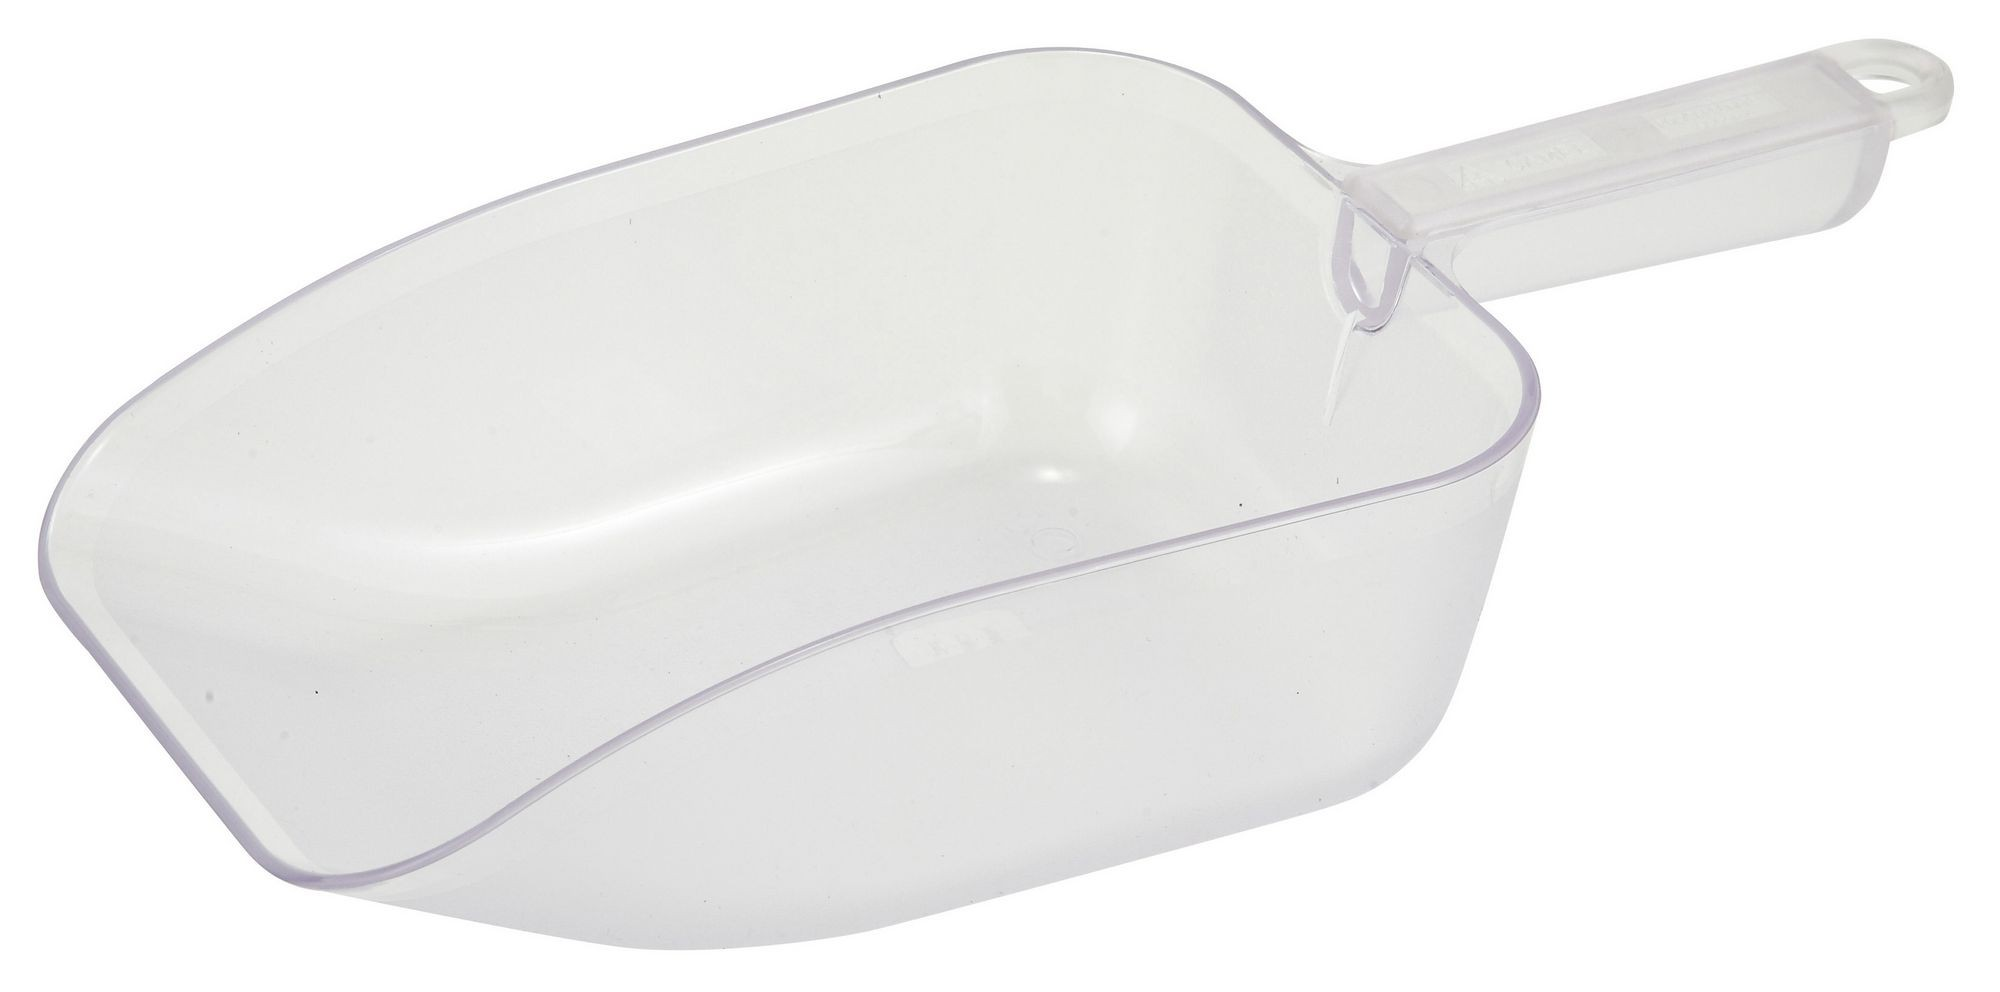 Winco PS-50 White Plastic 50 oz. Utility Scoop